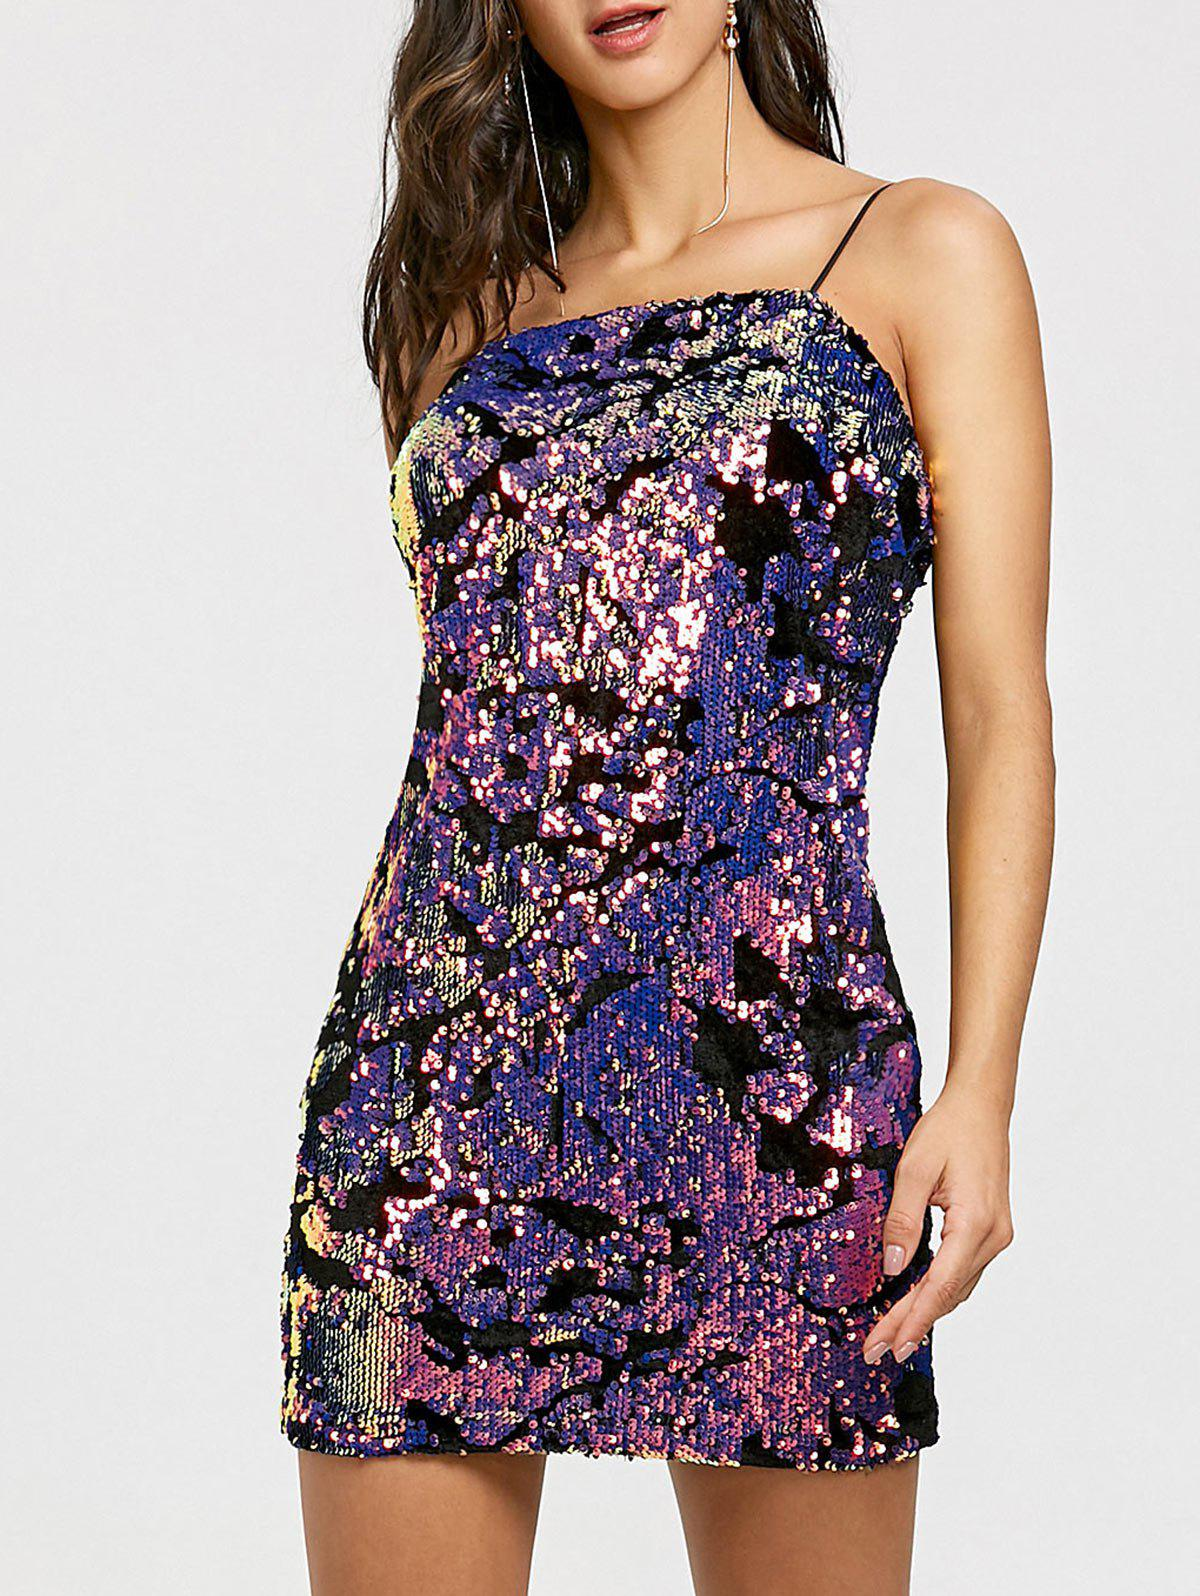 Mini Sequined Spaghetti Strap Dress - COLORMIX S